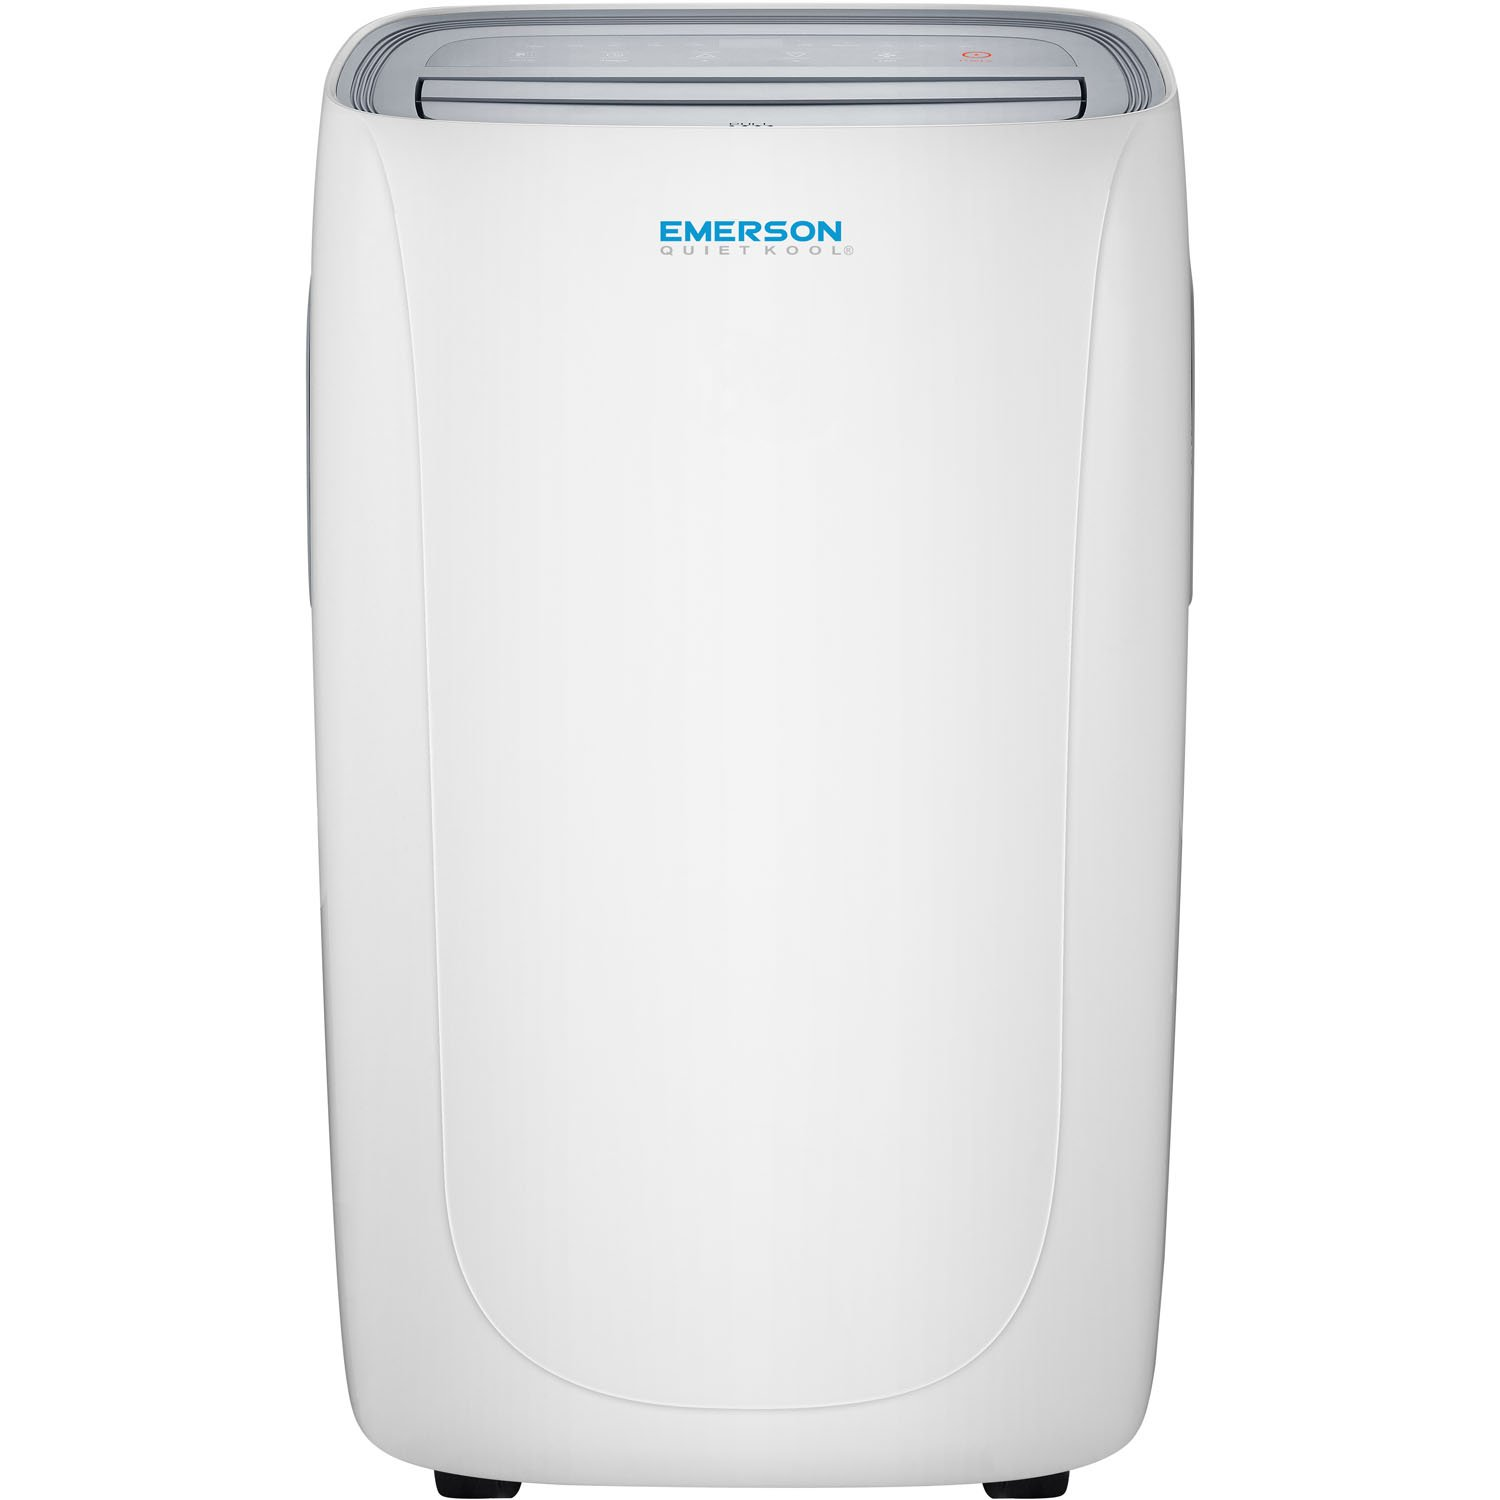 Emerson Quiet Kool Heat/Cool Portable Air Conditioner with Remote Control, 14000 BTU Standard, White